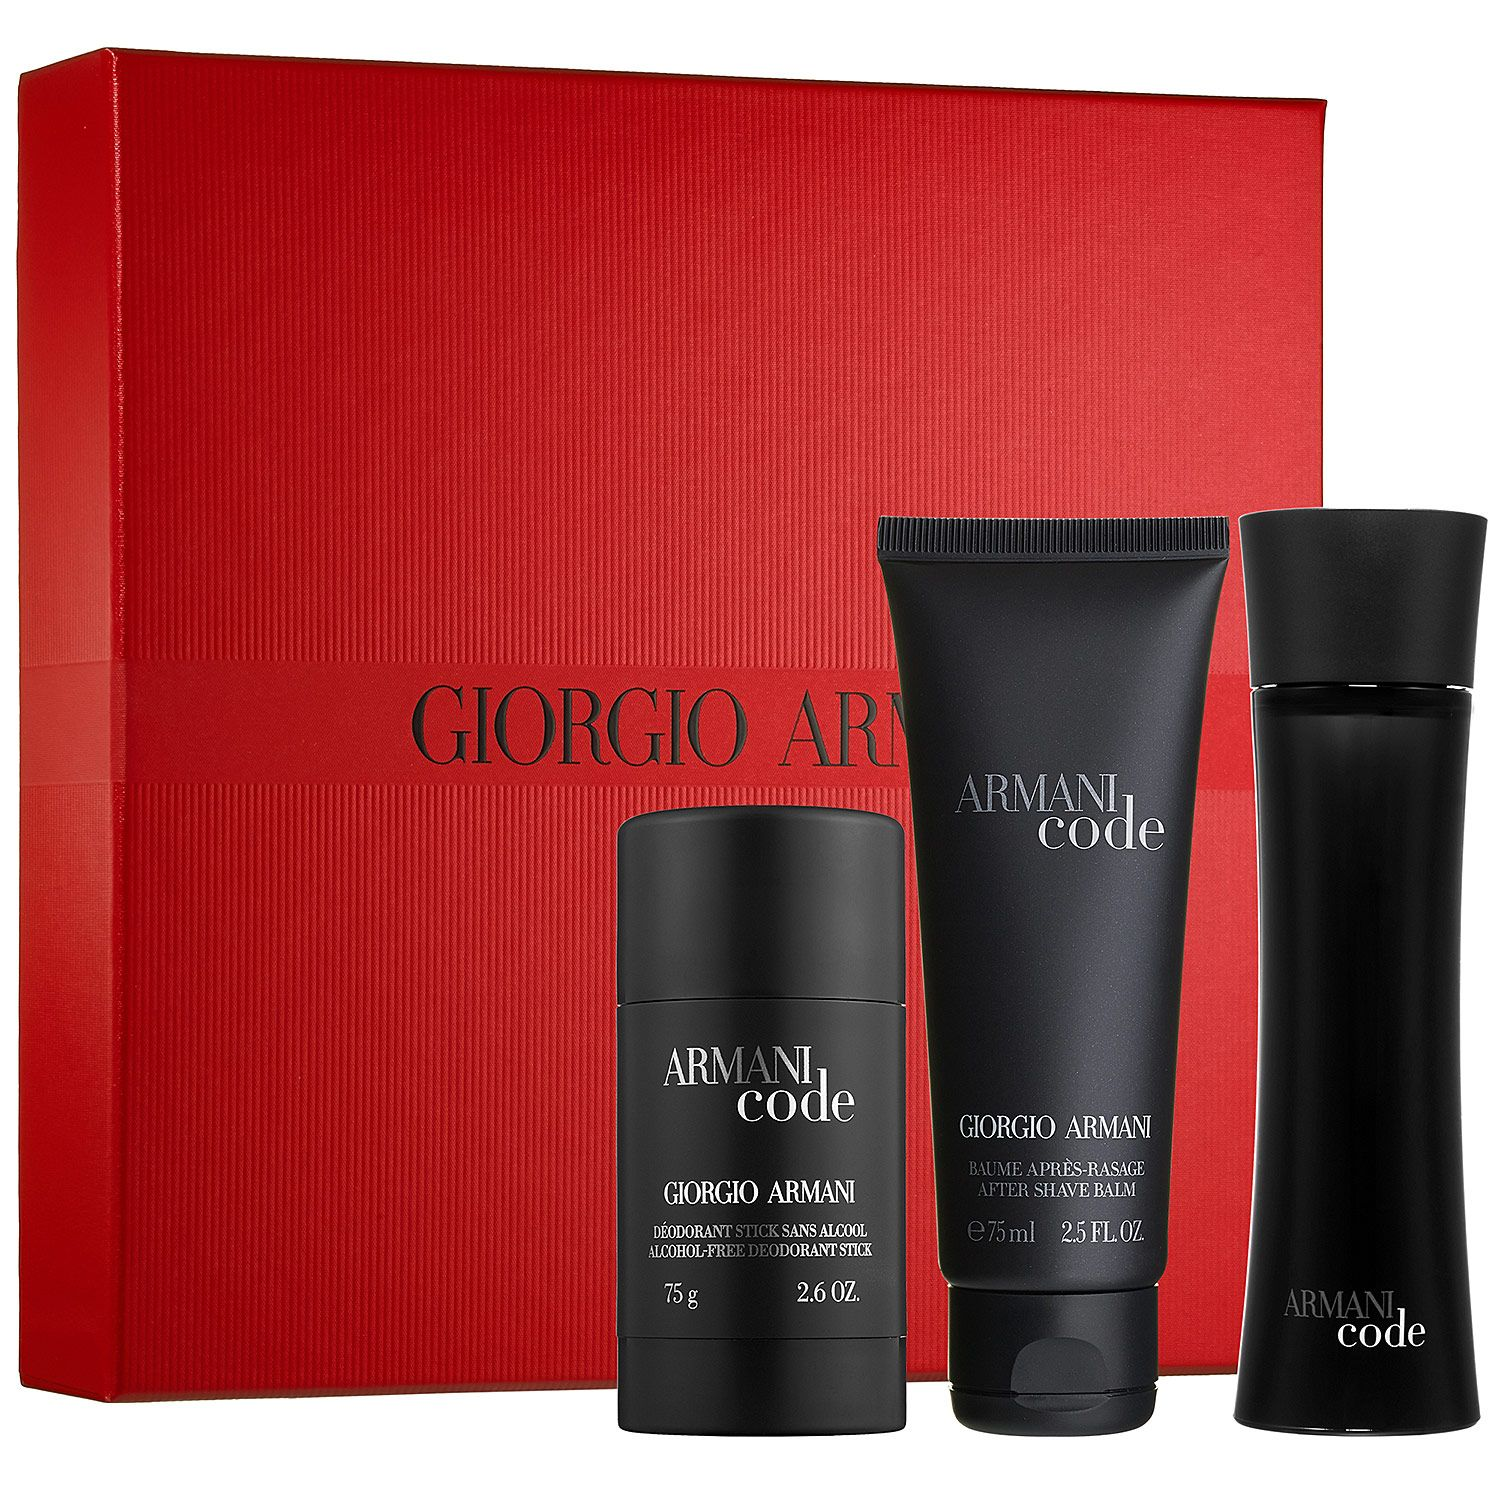 Giorgio Armani Armani Code for Women 3 Piece Gift Set with Eau de Parfum Spray, Soft Shower Gel & Moisturizing Perfumed Body Lotion. by GIORGIO ARMANI. More options available: $ Other Sellers: Product Features Launched by the design house of Giorgio Armani in the year